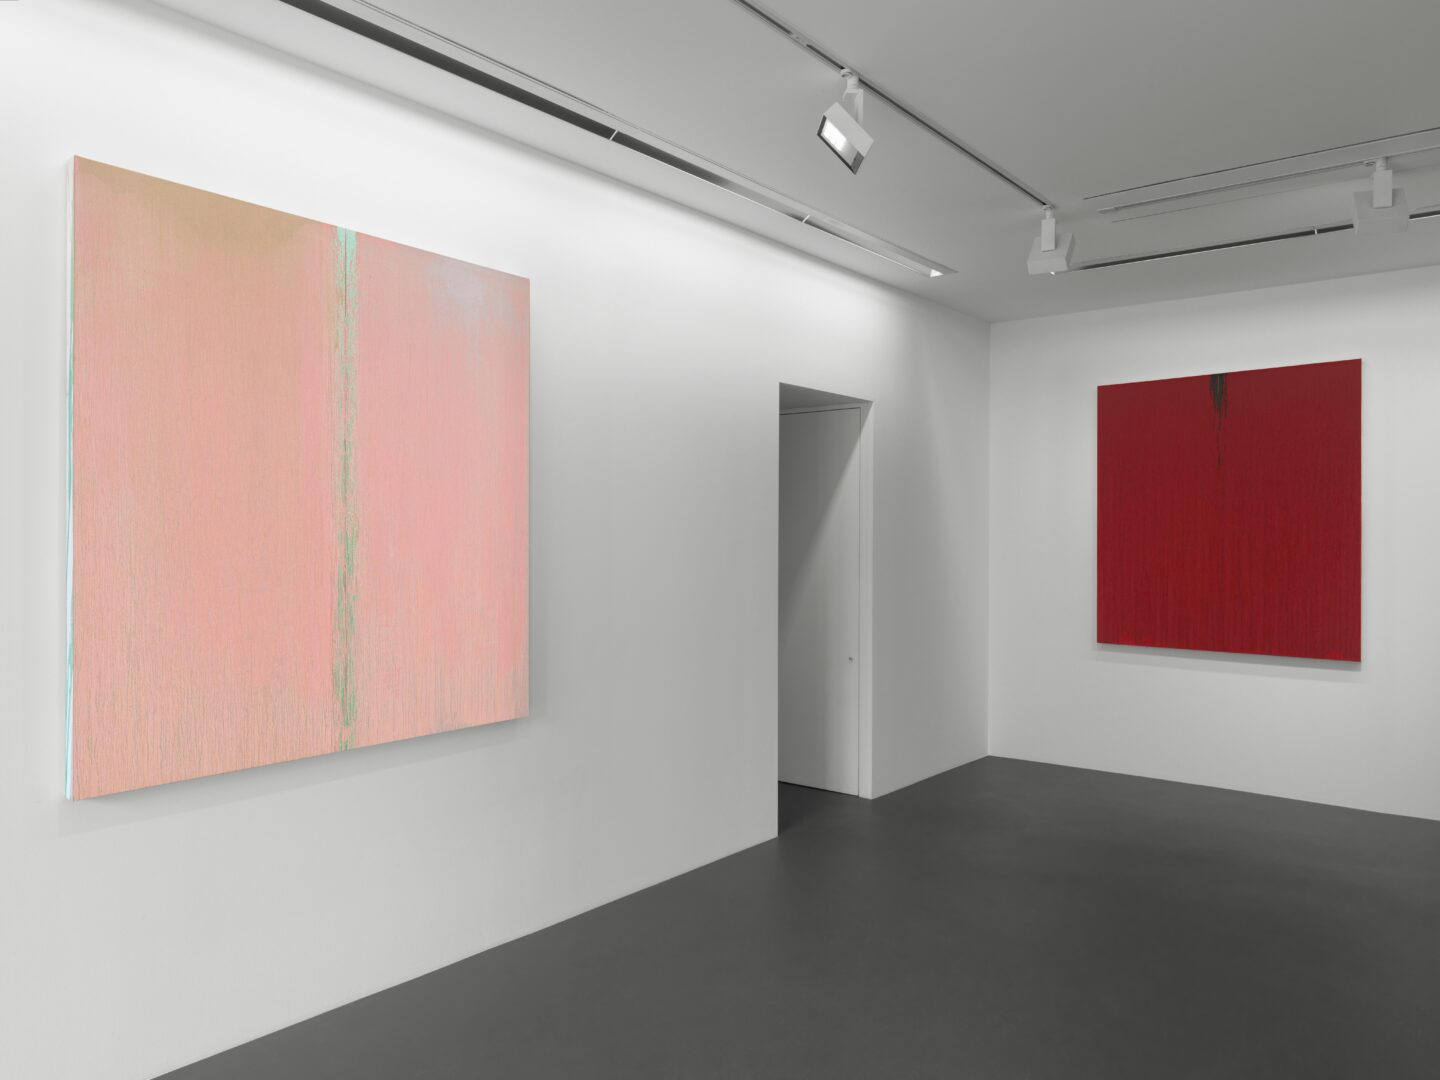 Exhibition View Pat Steir Soloshow «Paintings» at Vito Schnabel Gallery, St. Moritz, 2019 / © Pat Steir / Photo: Stefan Altenburger / Courtesy: the artist and Vito Schnabel Gallery